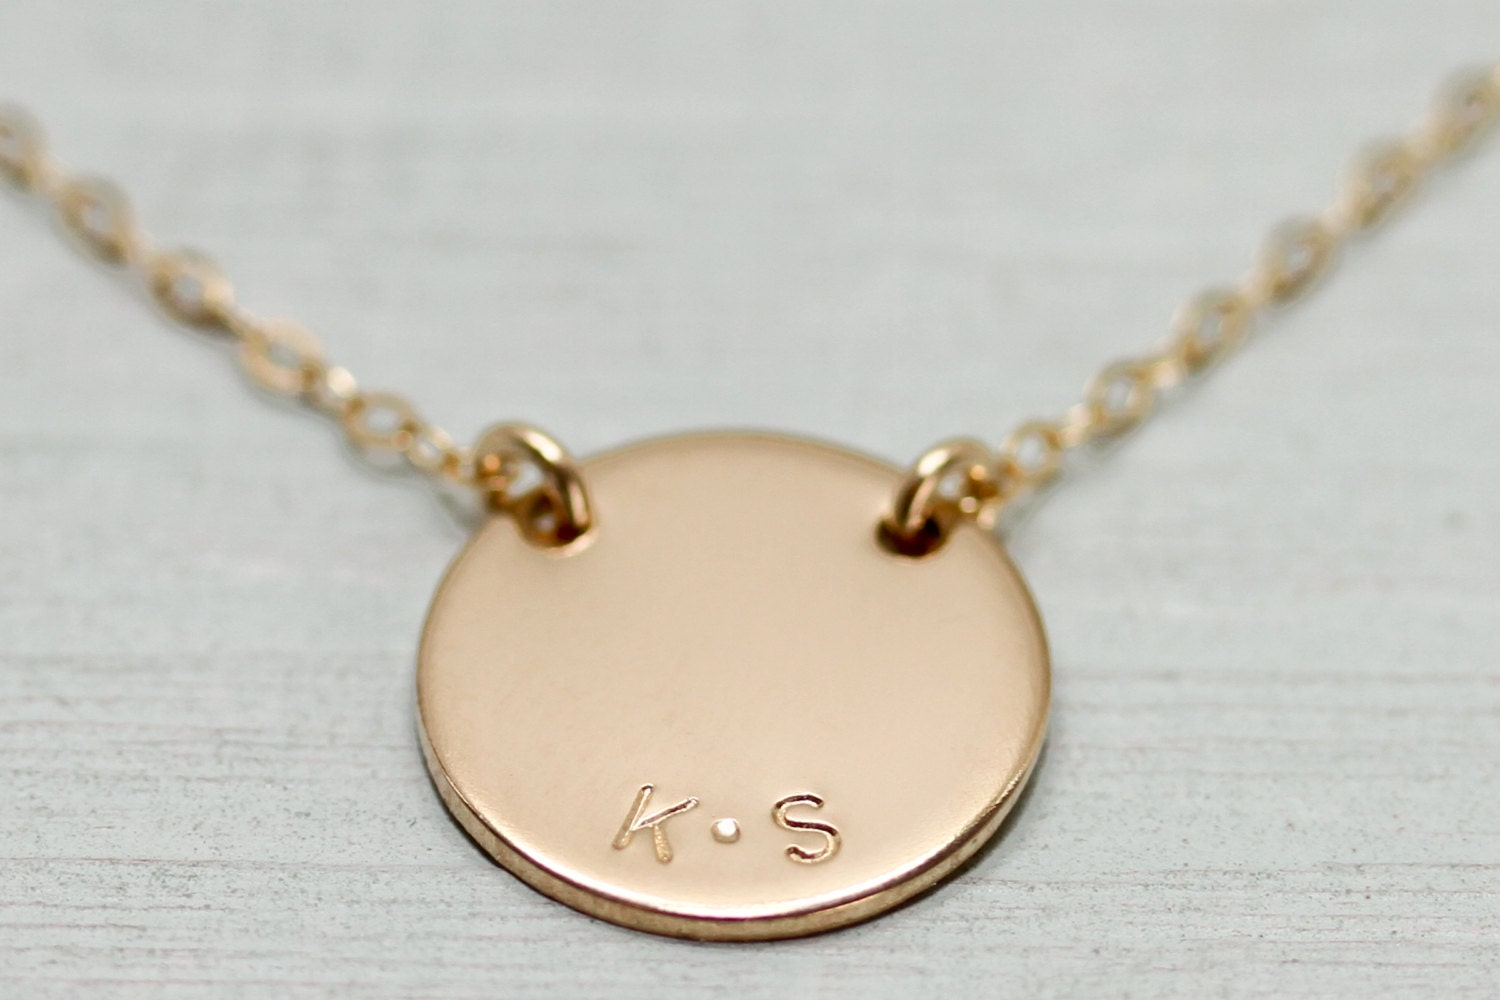 gold disc necklace personalized jewelry gold necklace. Black Bedroom Furniture Sets. Home Design Ideas